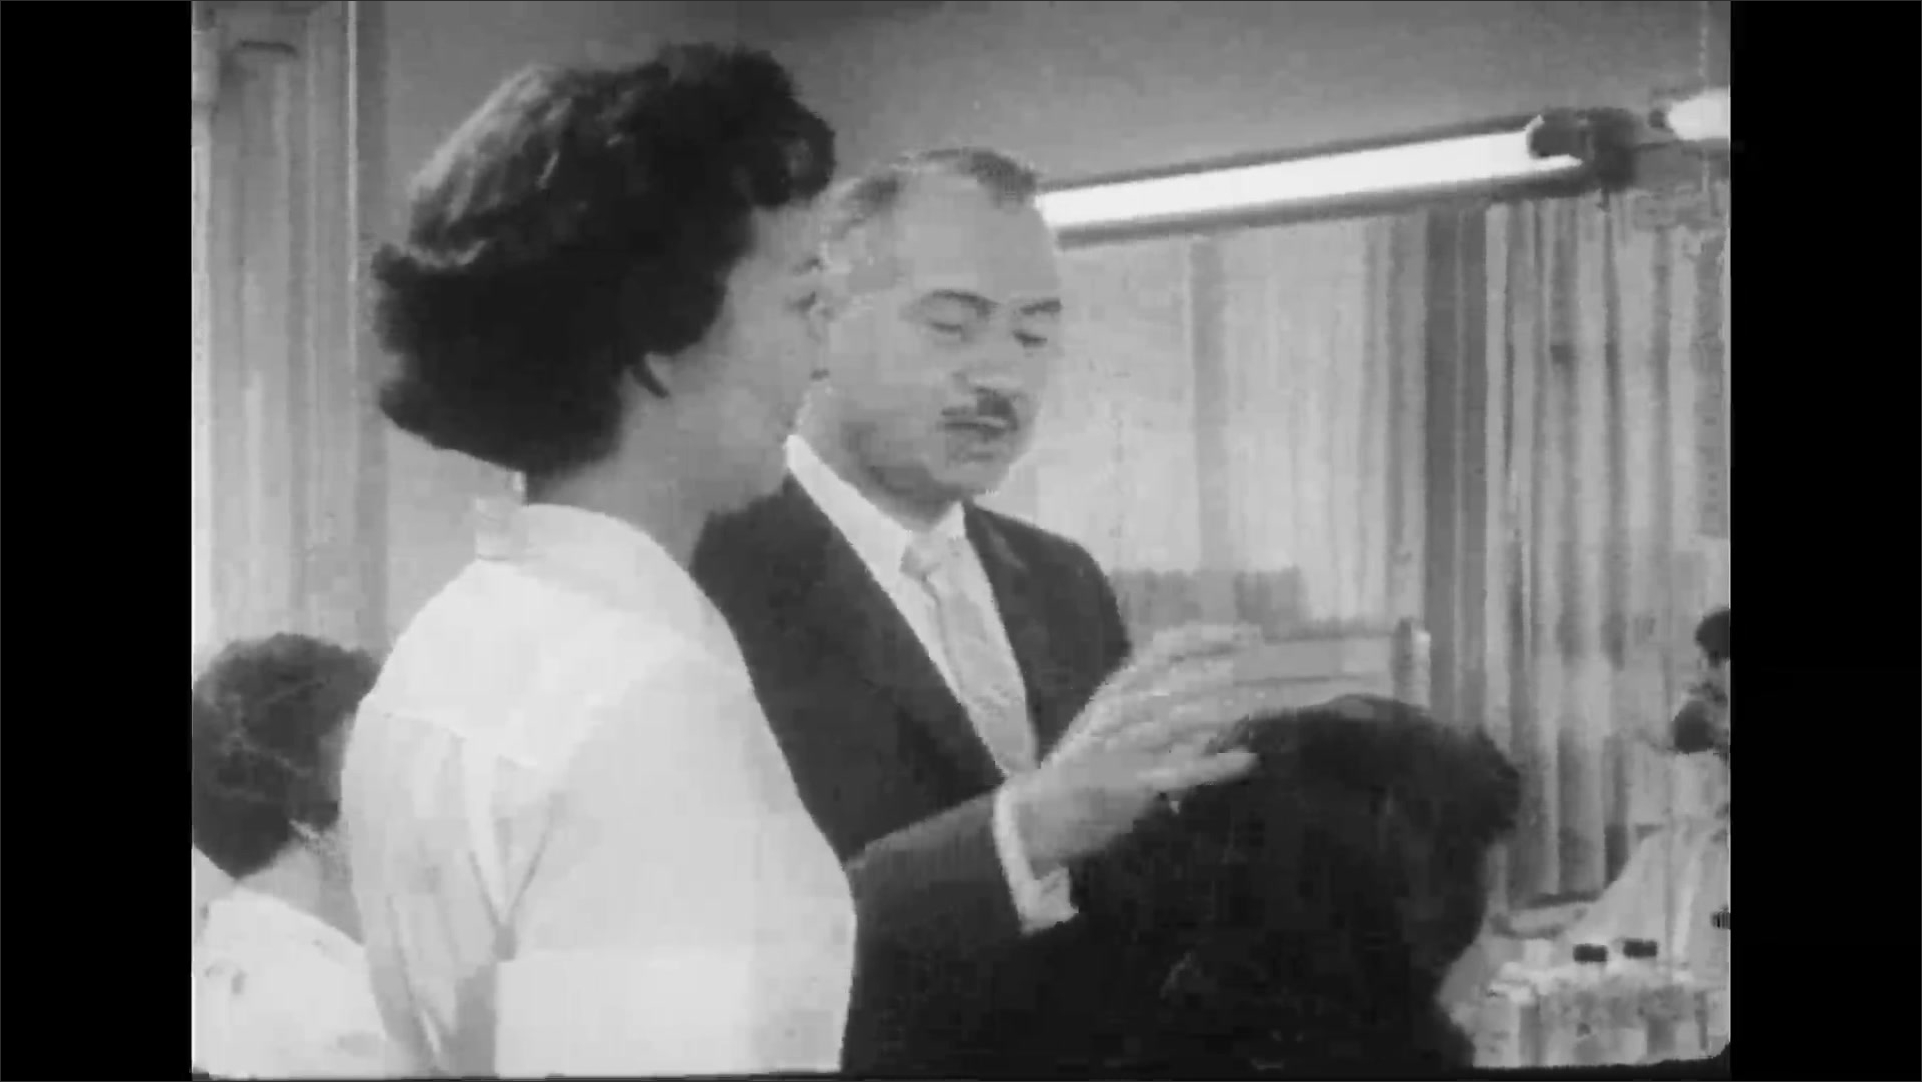 UNITED STATES 1950s: Man walks woman through salon / Man with woman in chair / Man touches woman's hair, stylist walks to chair / Man talks to stylist / Man moves to next woman.